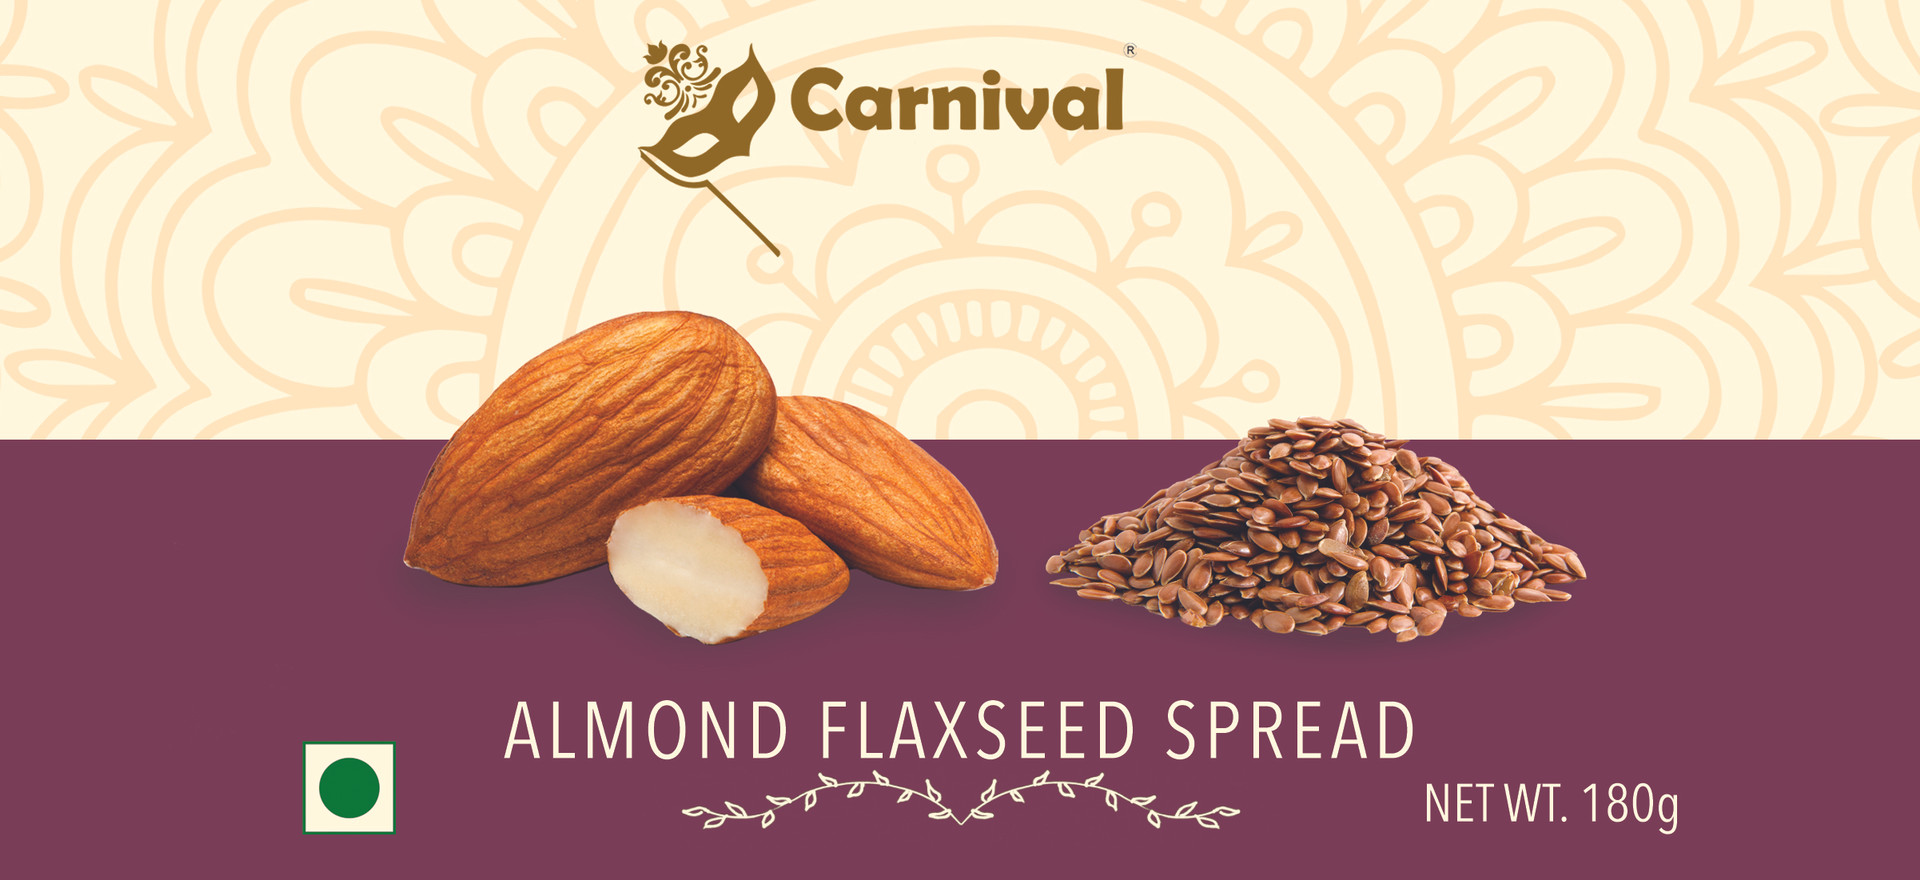 Almond Flaxseed Spread